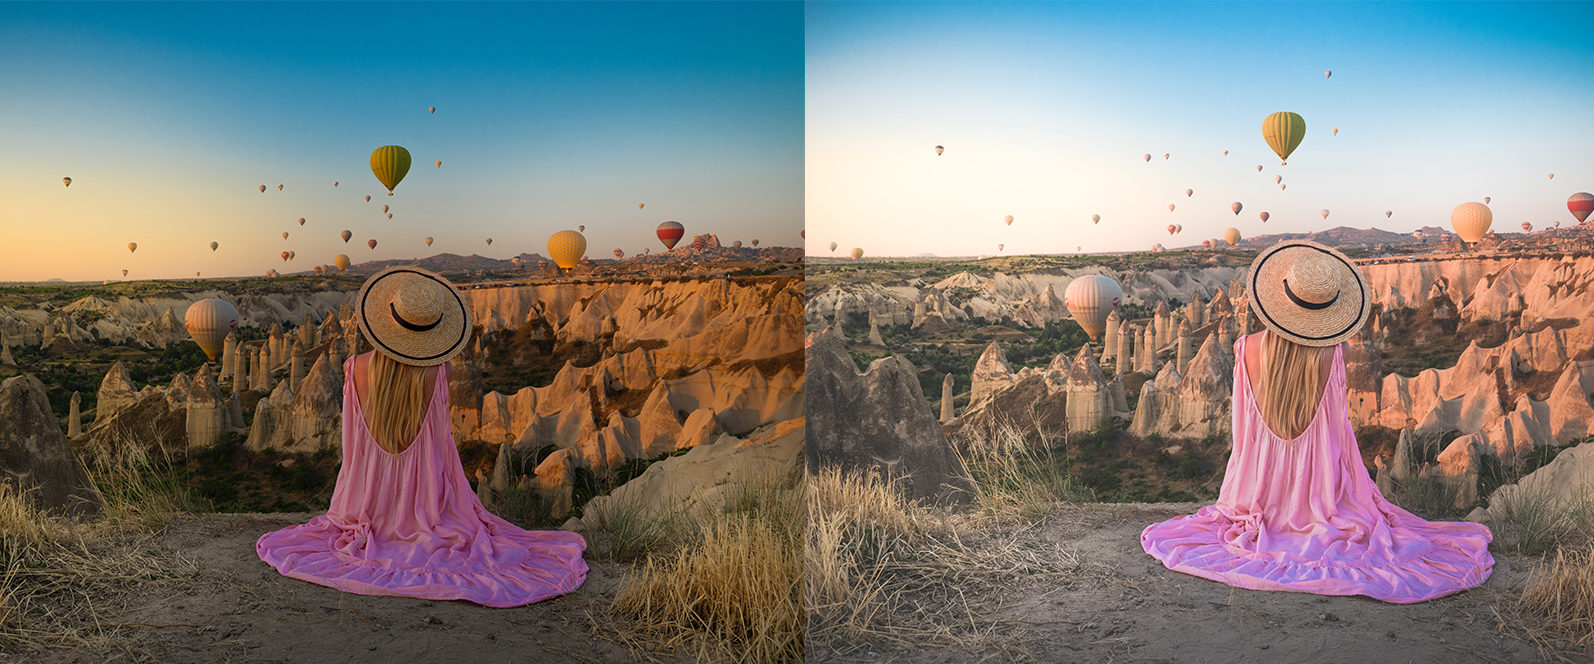 BUNDLE /// 04_Travel Collection // 64 x Desktop and Mobile Presets - 1 Hot Air Balloon1 -